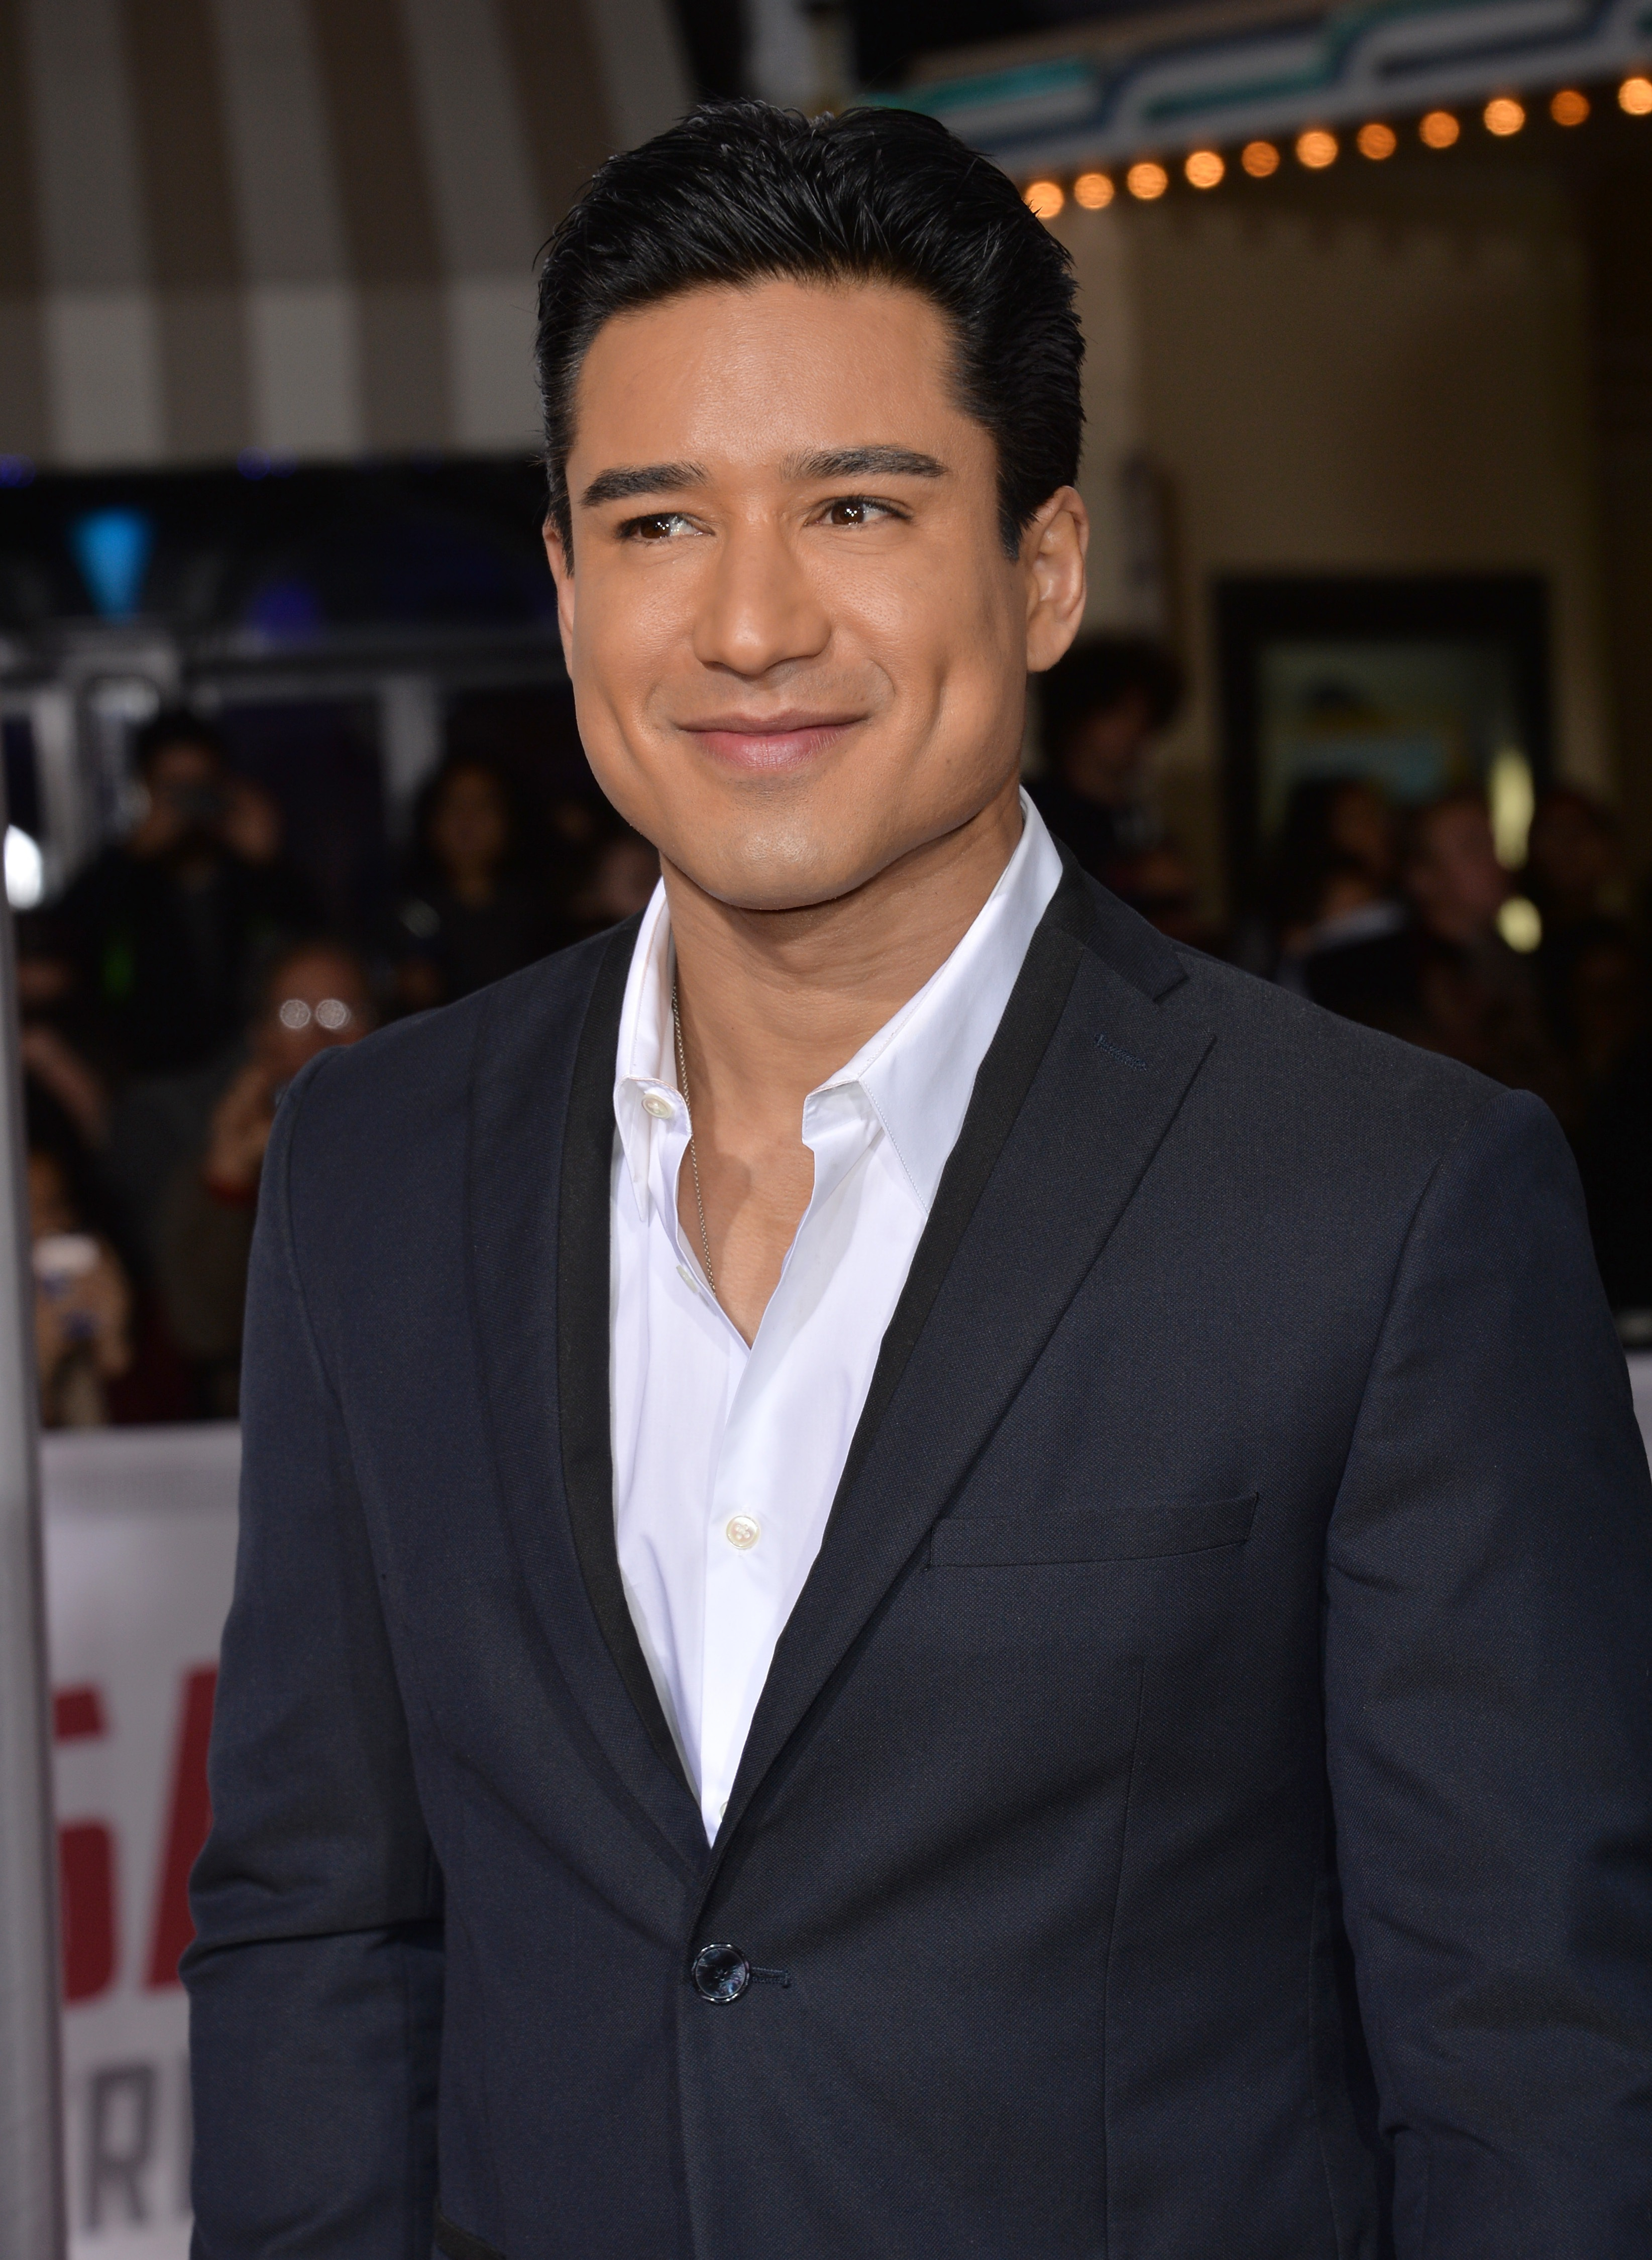 """LOS ANGELES, CA - FEBRUARY 1, 2016: Mario Lopez at the world premiere of """"Hail Caesar!"""" at the Regency Village Theatre, Westwood.; Shutterstock ID 435198598; Title: saved by the bell cast"""